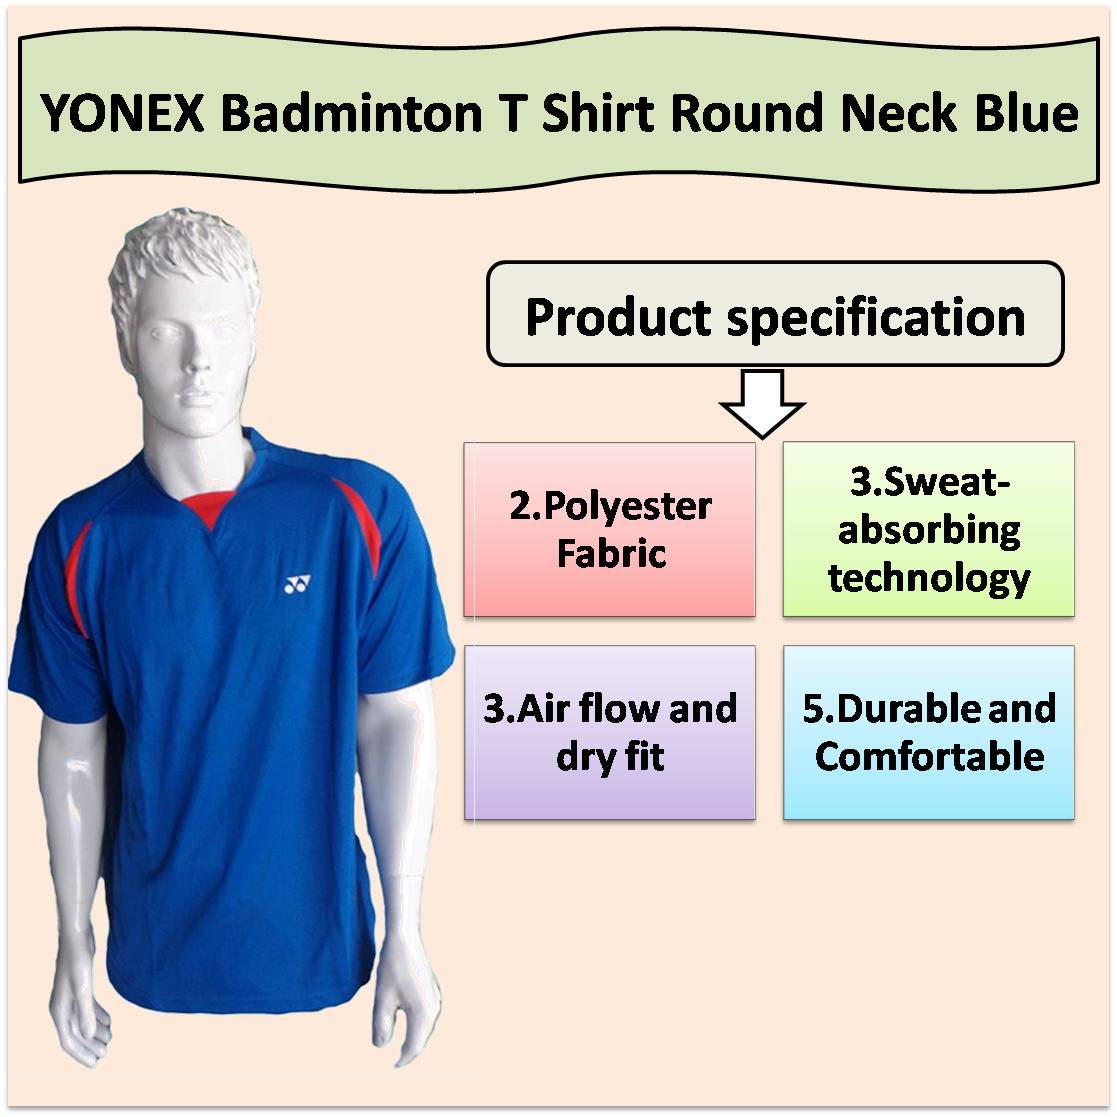 YONEX Badminton T Shirt Round Neck Blue and red